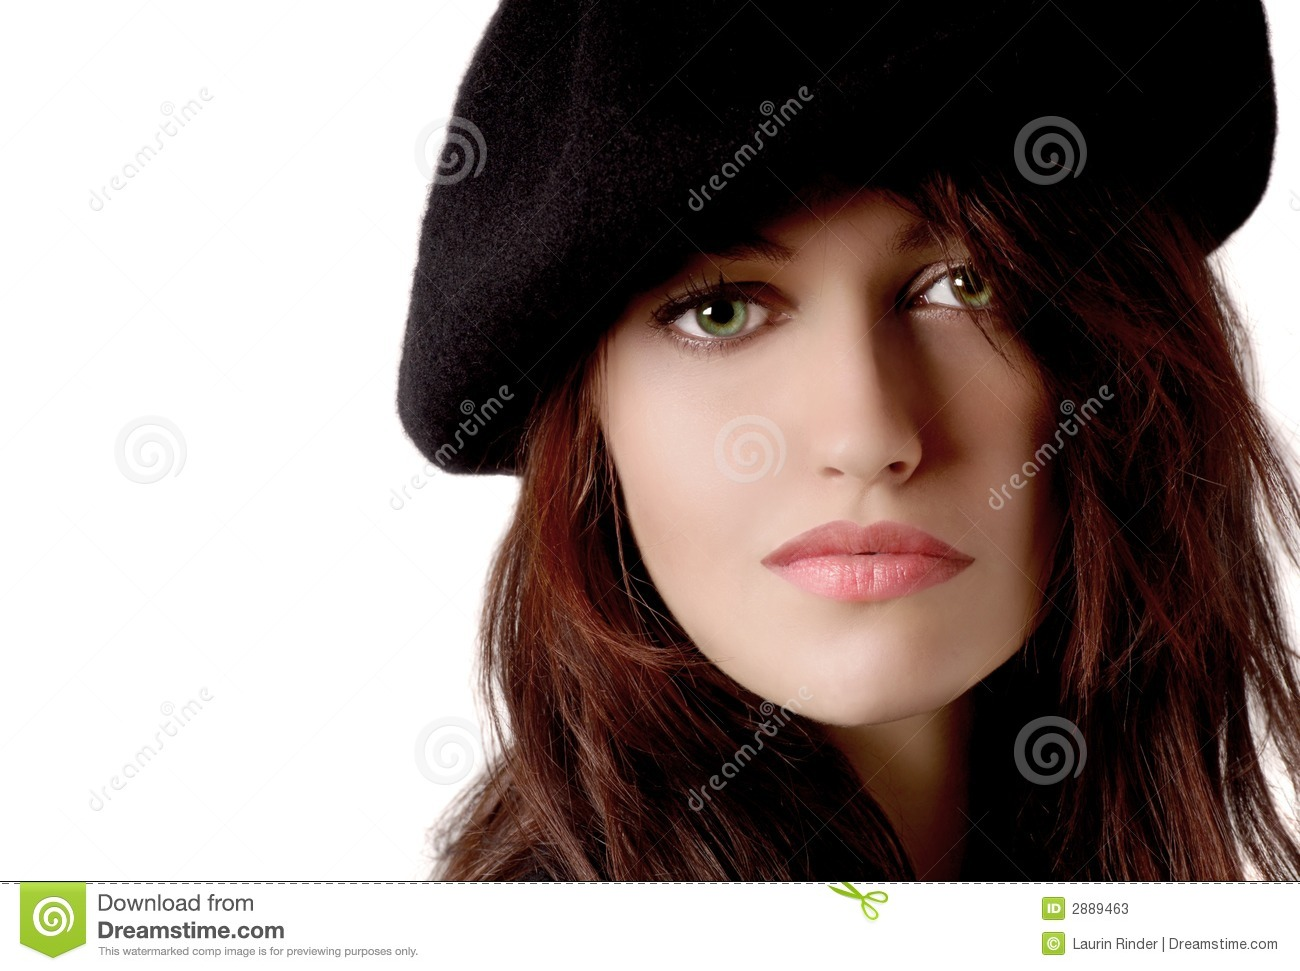 Woman with Beret stock image. Image of eyes a8c9fa2bc83